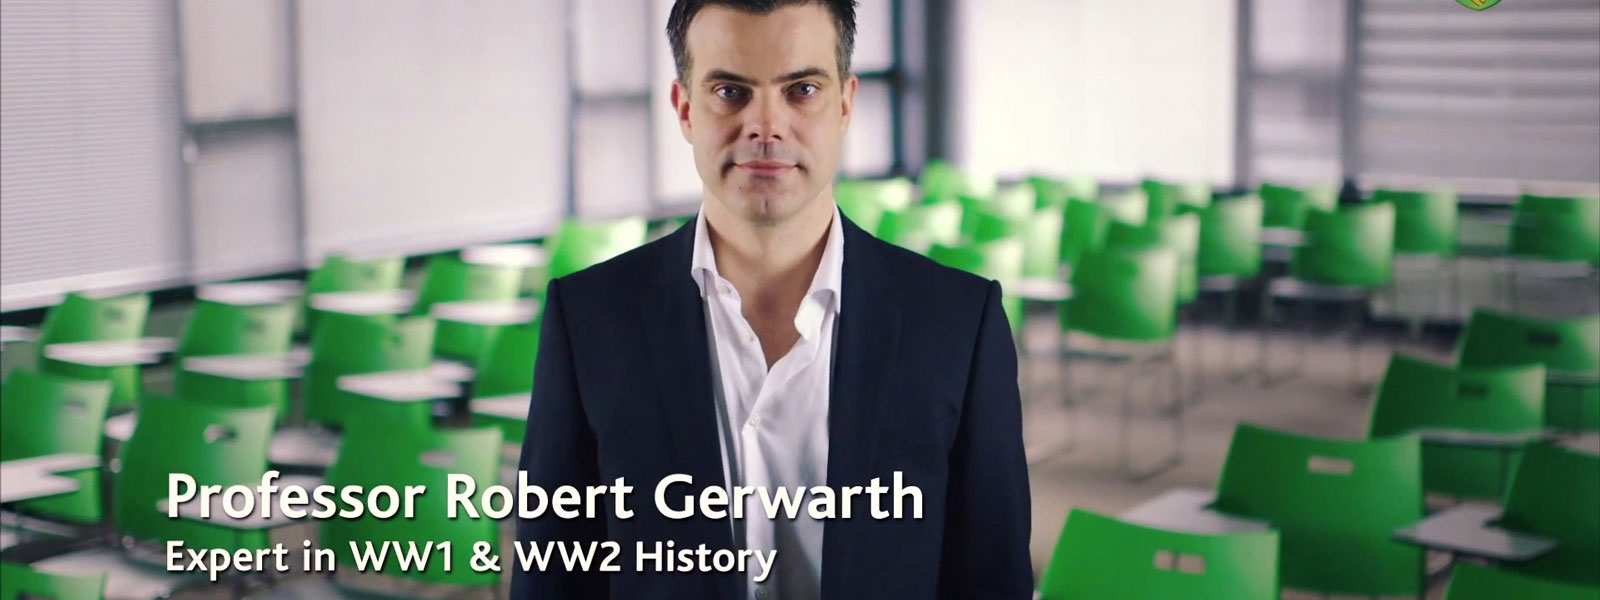 Professor Robert Gerwarth